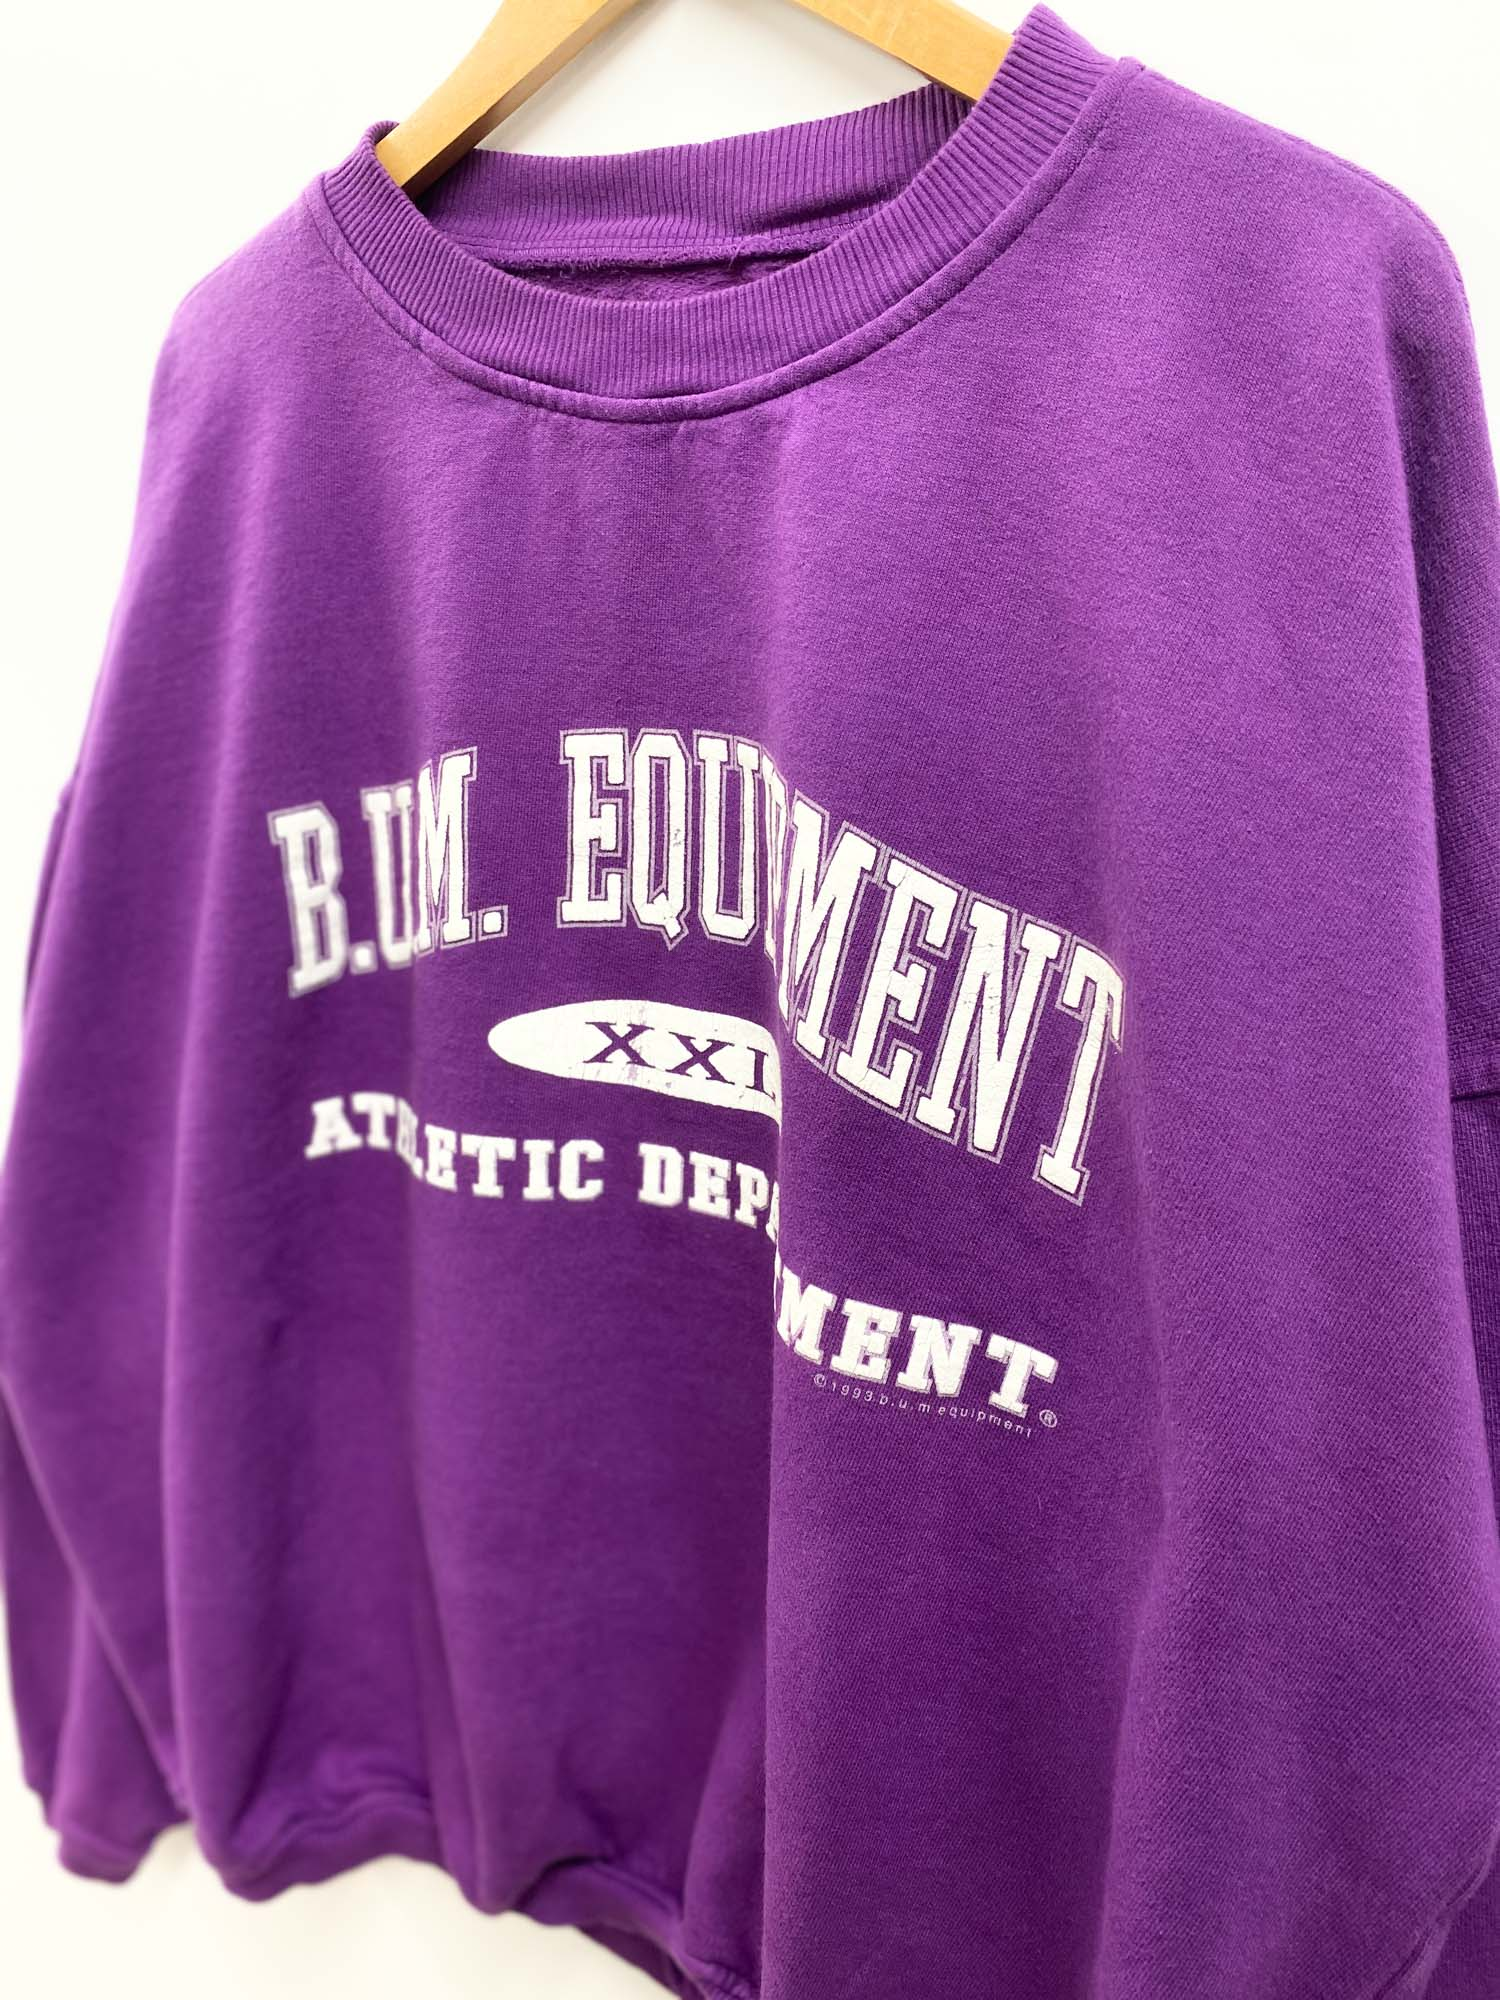 VINTAGE B.U.M EQUIPMENT CREWNECK